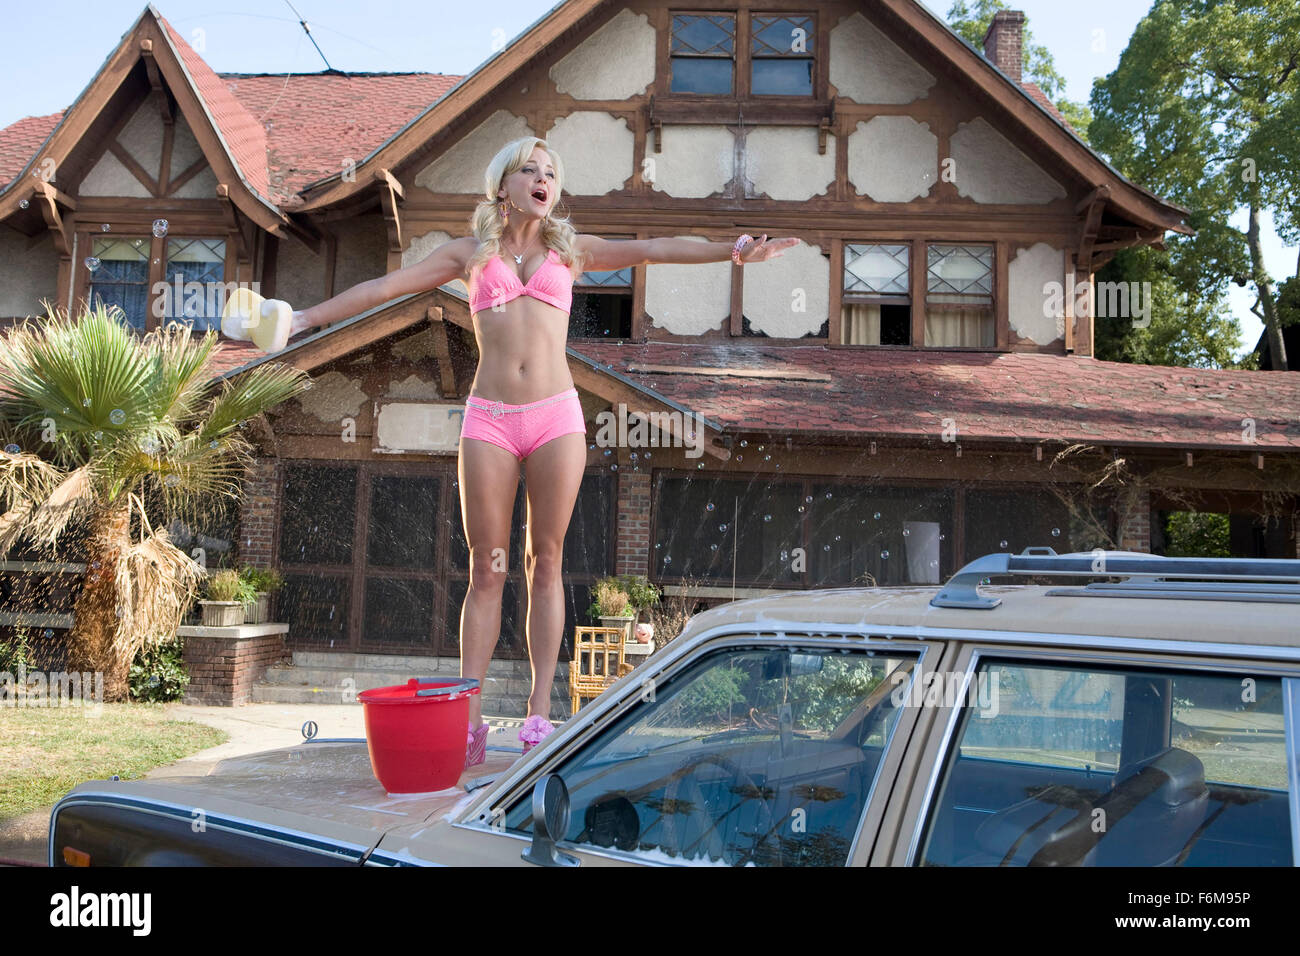 The House Bunny is a 2008 American comedy film directed by Fred Wolf and written by Kirsten Smith and Karen McCullah Lutz It stars Anna Faris as a former Playboy